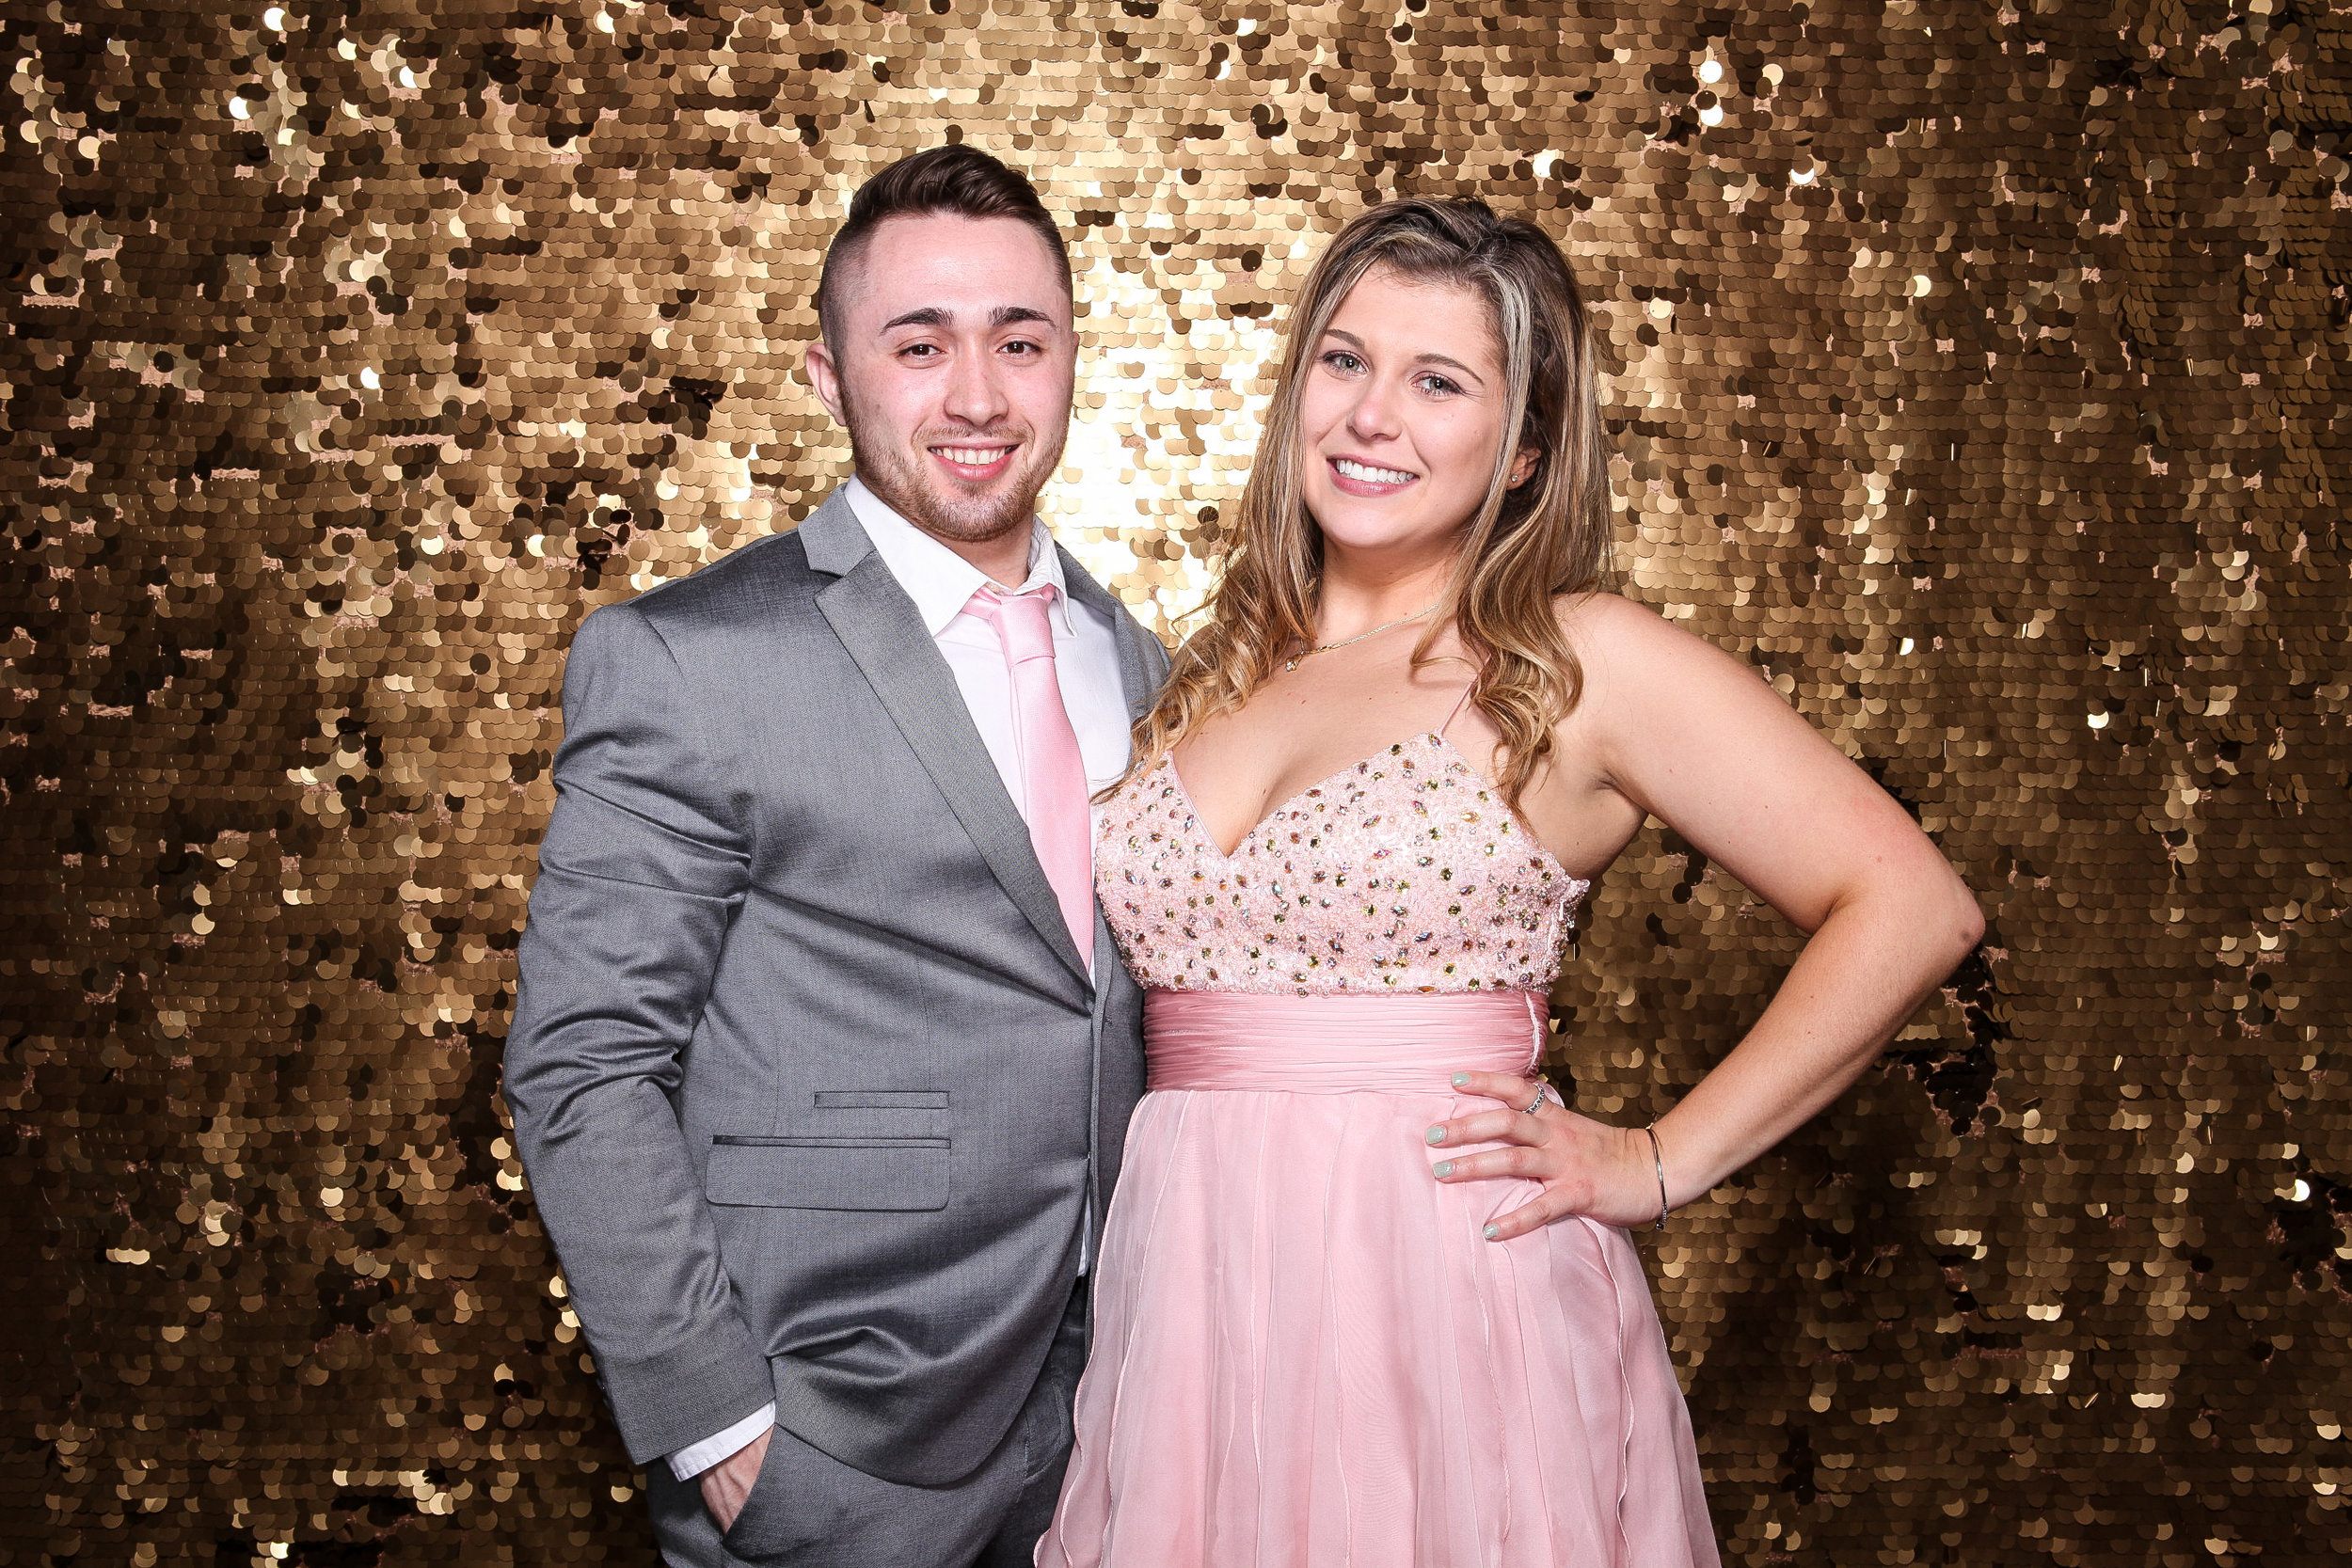 20190503_Adelphi_Senior_Formal-320.jpg